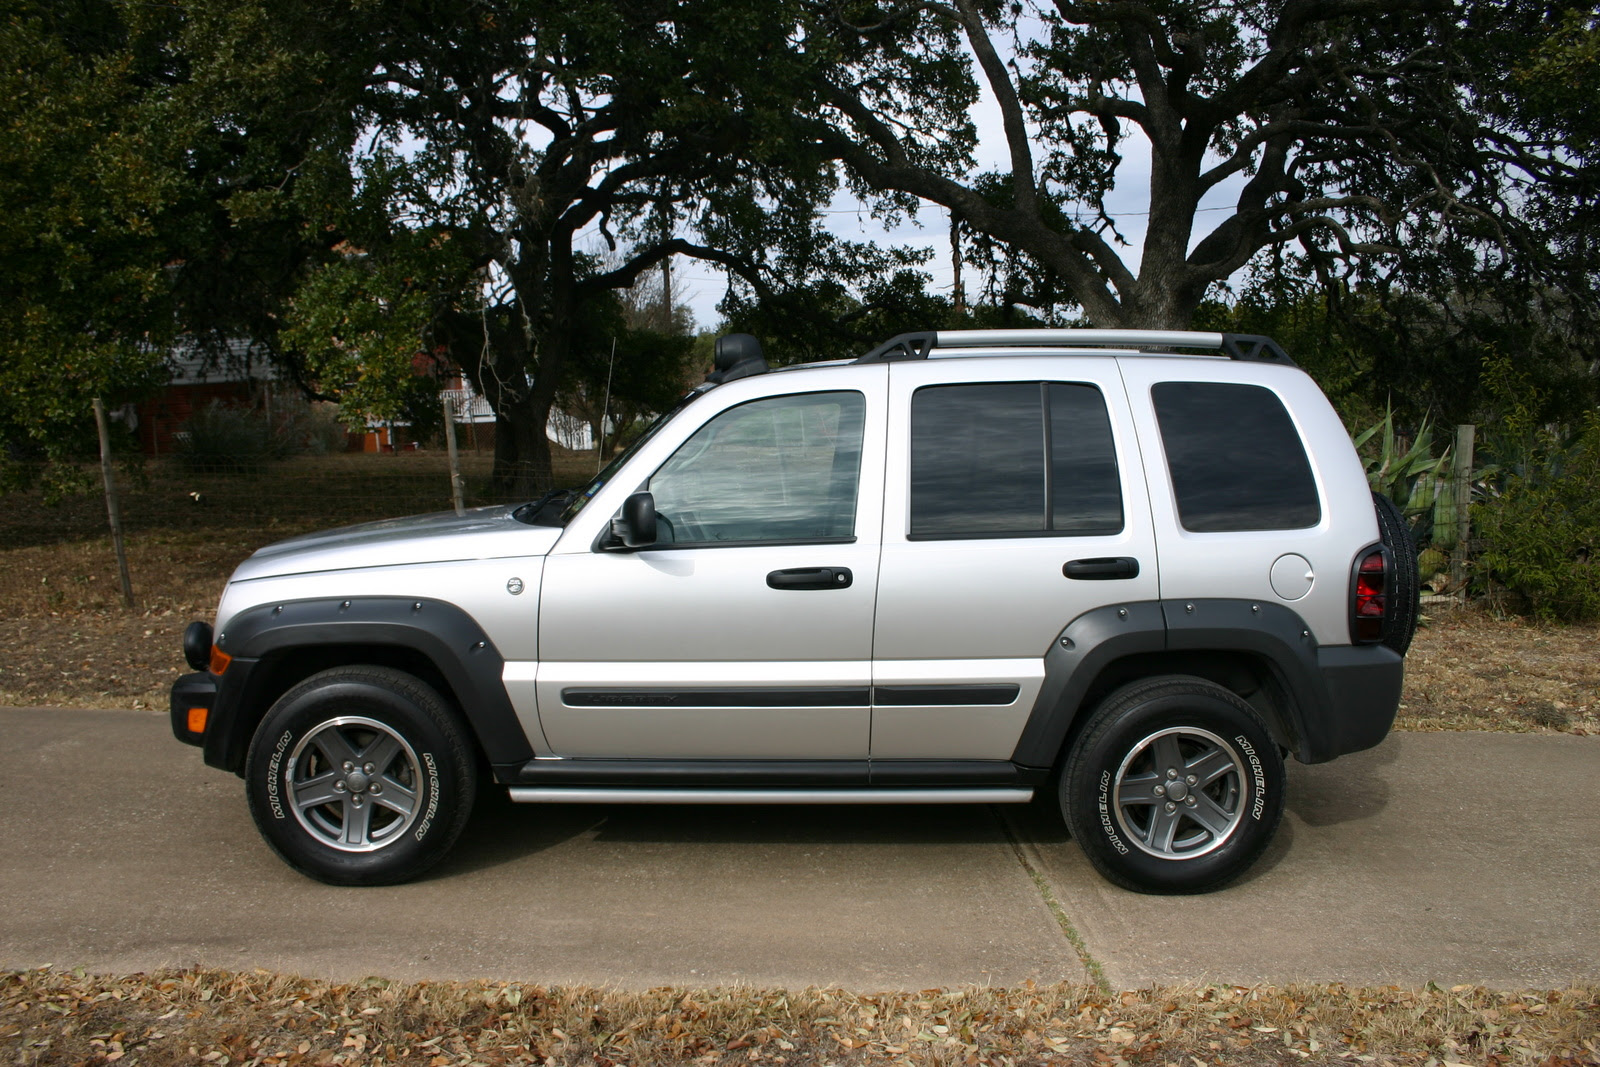 2006 Jeep Liberty - Pictures - CarGurus